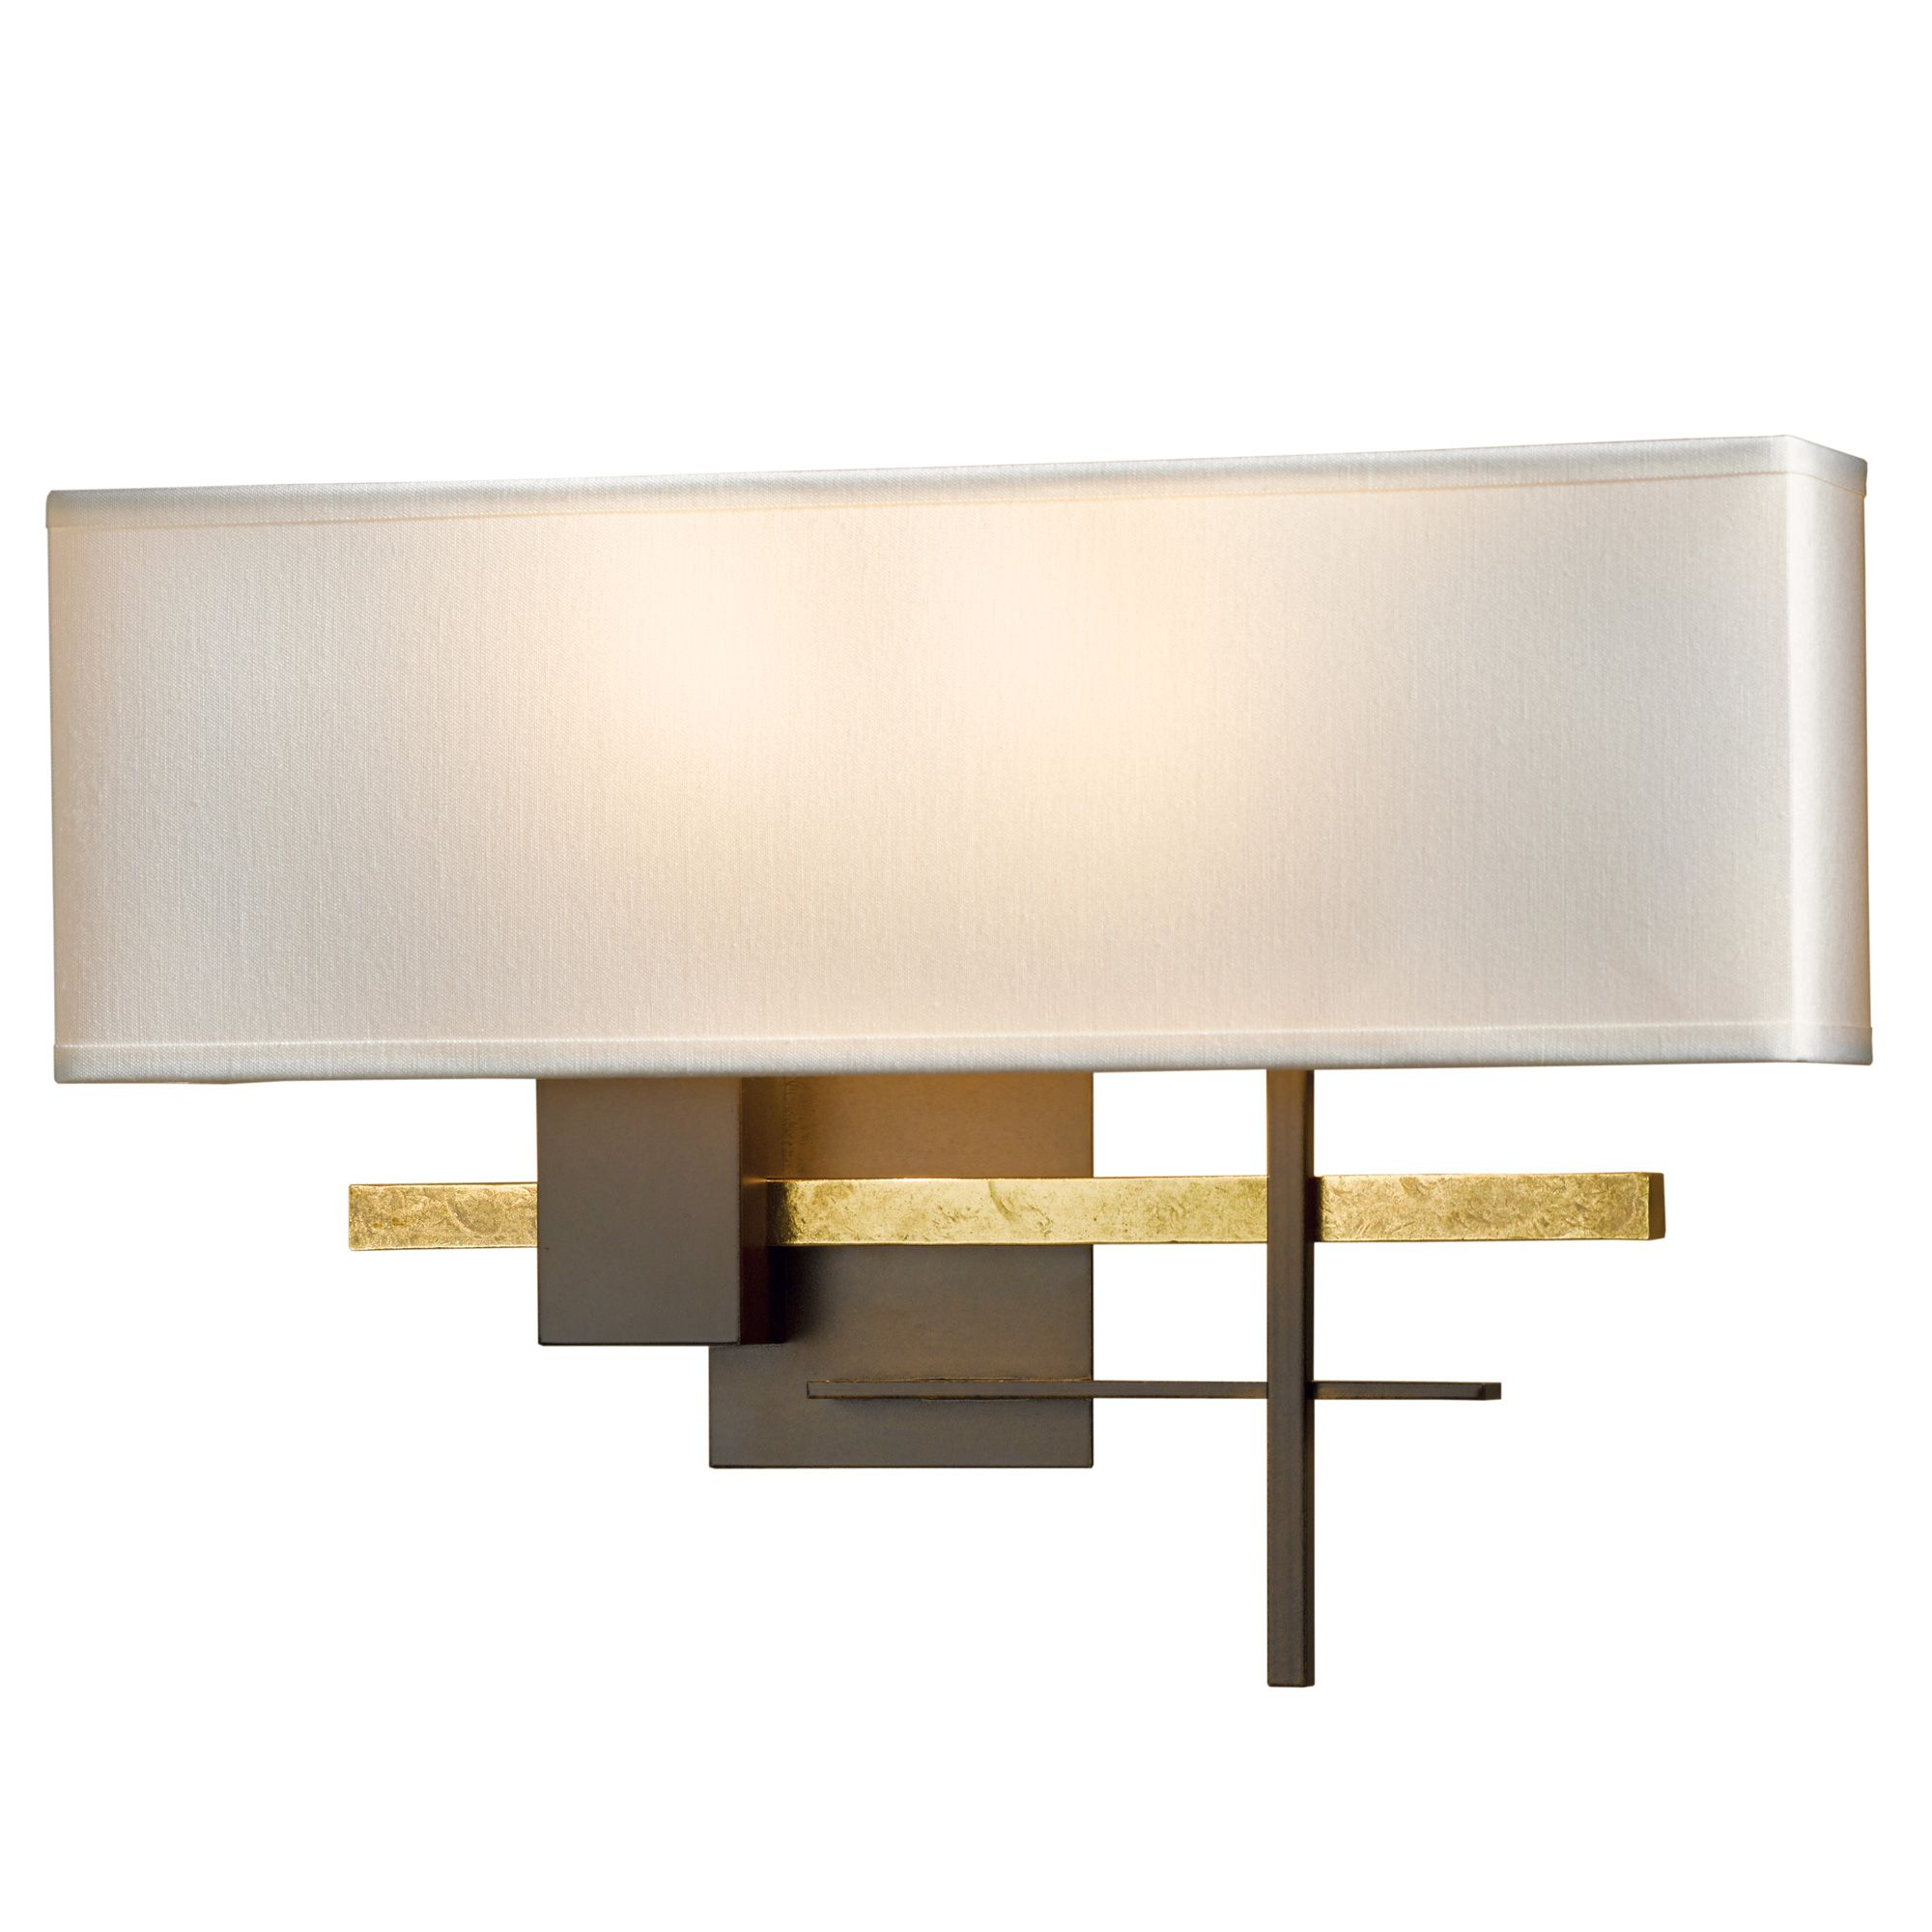 Cosmo Wall Sconce Features Eclipse Doeskin Suede Natural Anna Flax Or Terra Suede Shades With Black Dark Smoke Or Bronze Wall Sconce Sconces Wall Sconces